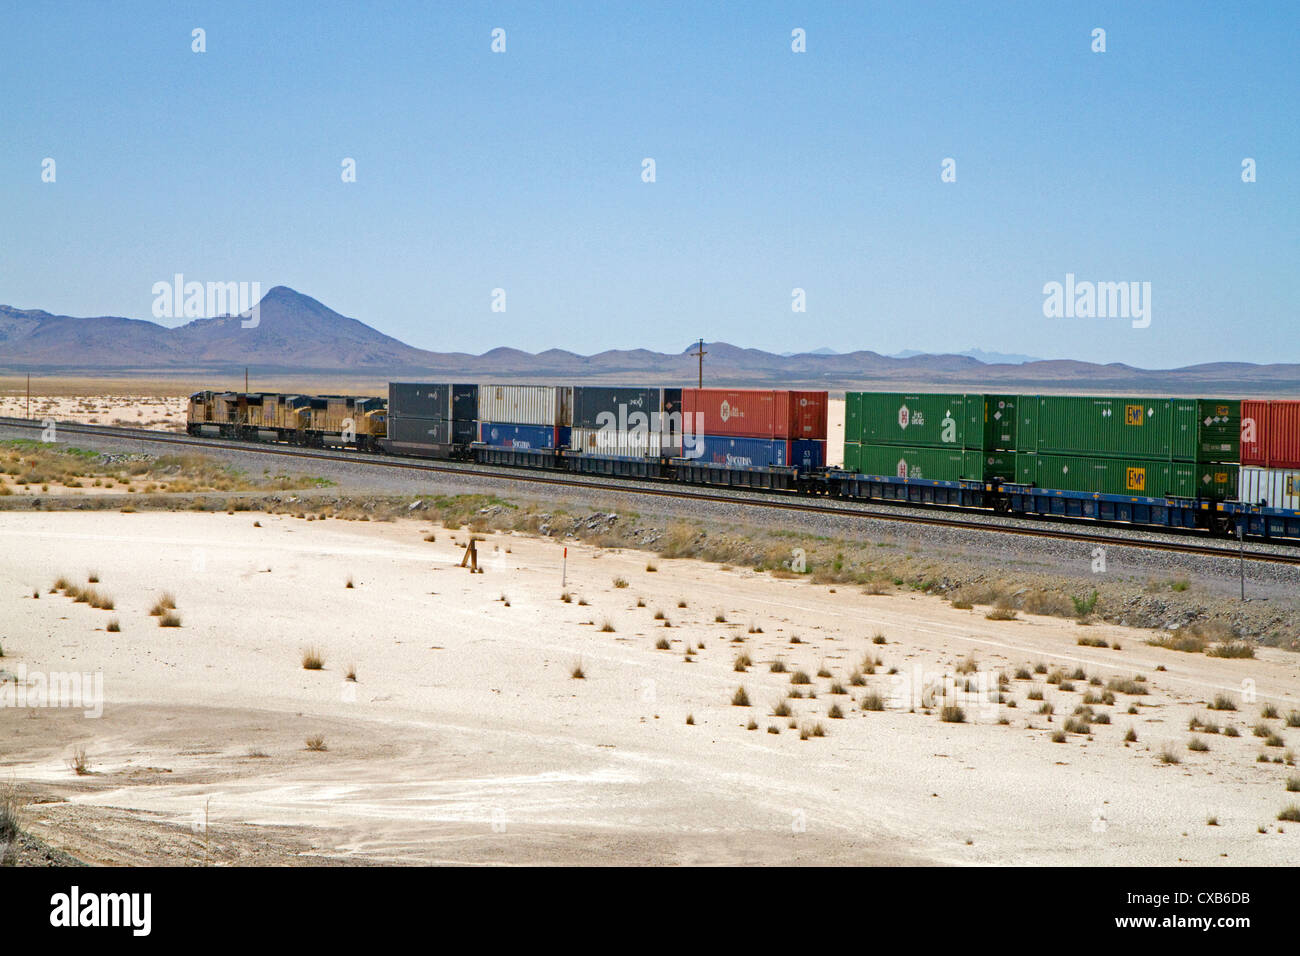 Union Pacific Railroad locomotive traveling along Interstate 10 through southwest New Mexico, USA. - Stock Image